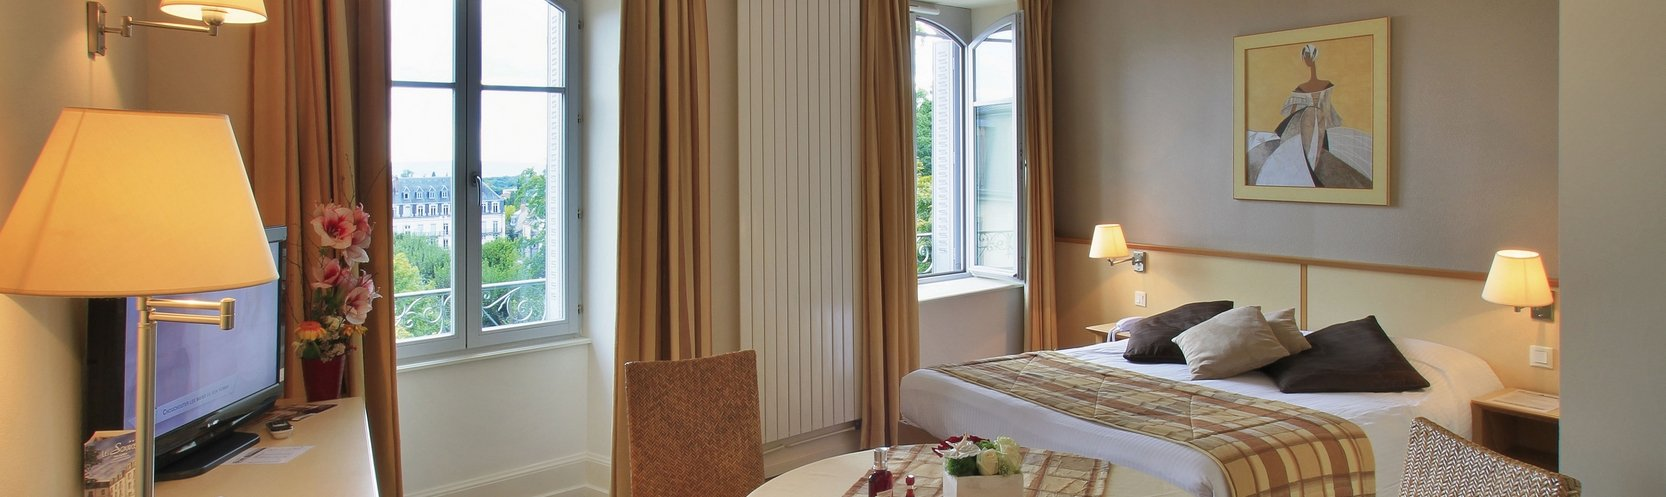 cerise-luxeuil-les-sources-hotel-residence-studio.jpg